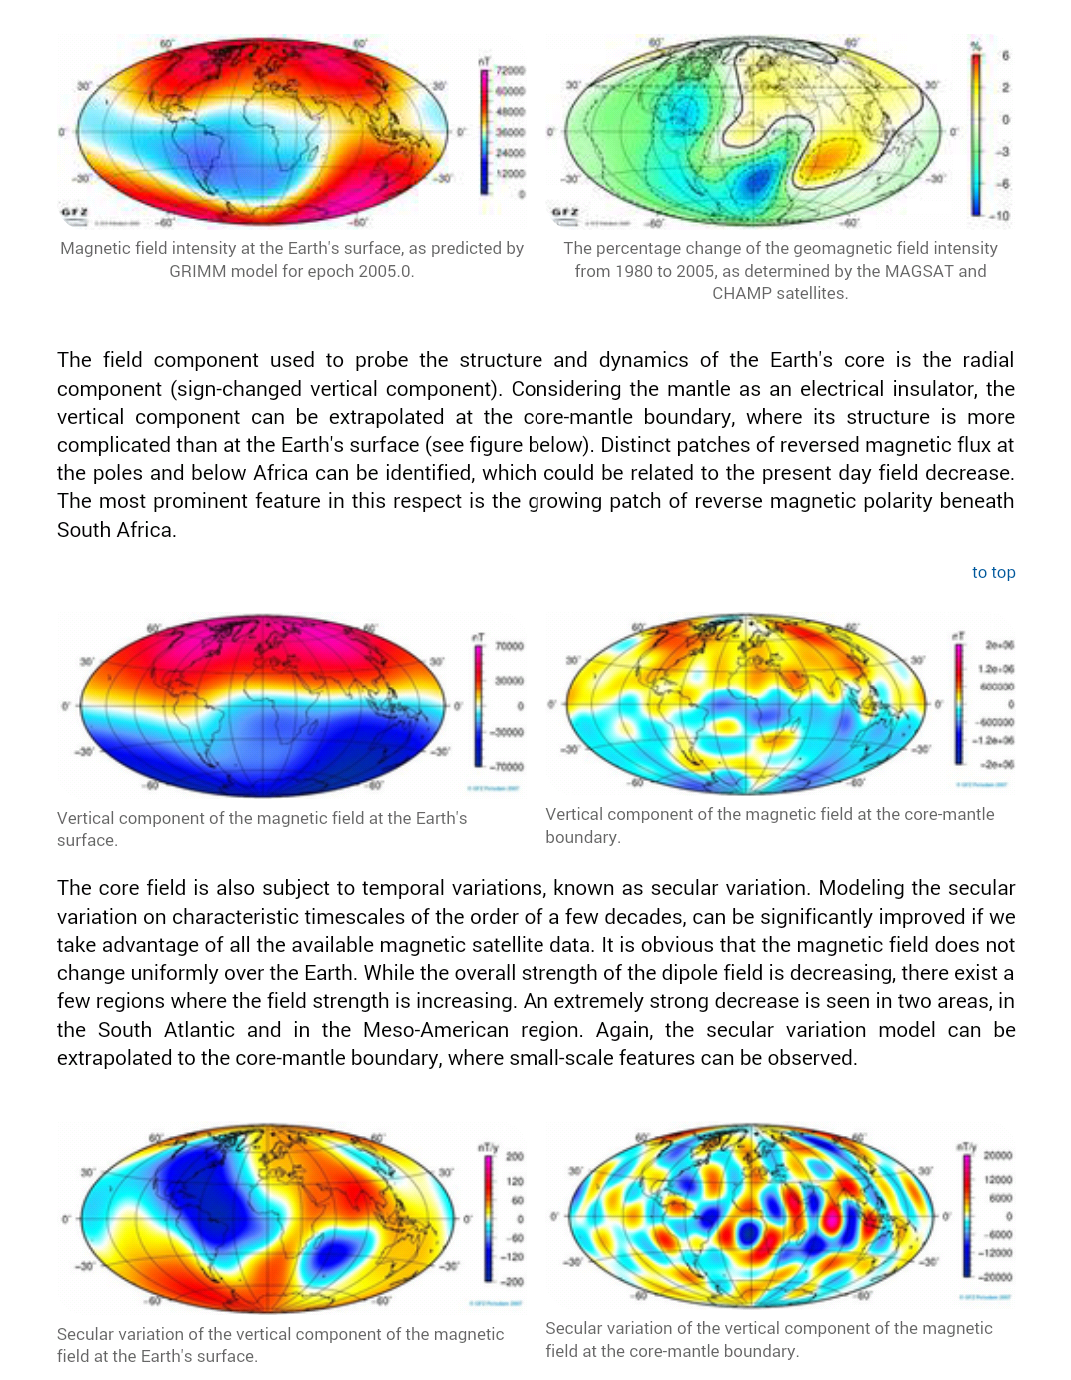 Electrical charged superfluid plasma cosmology earths core earths cmb or core mantle boundary is a phase change transition of solid rock crystals mixed together with a mhd fluid flow structure and likely with a sciox Gallery